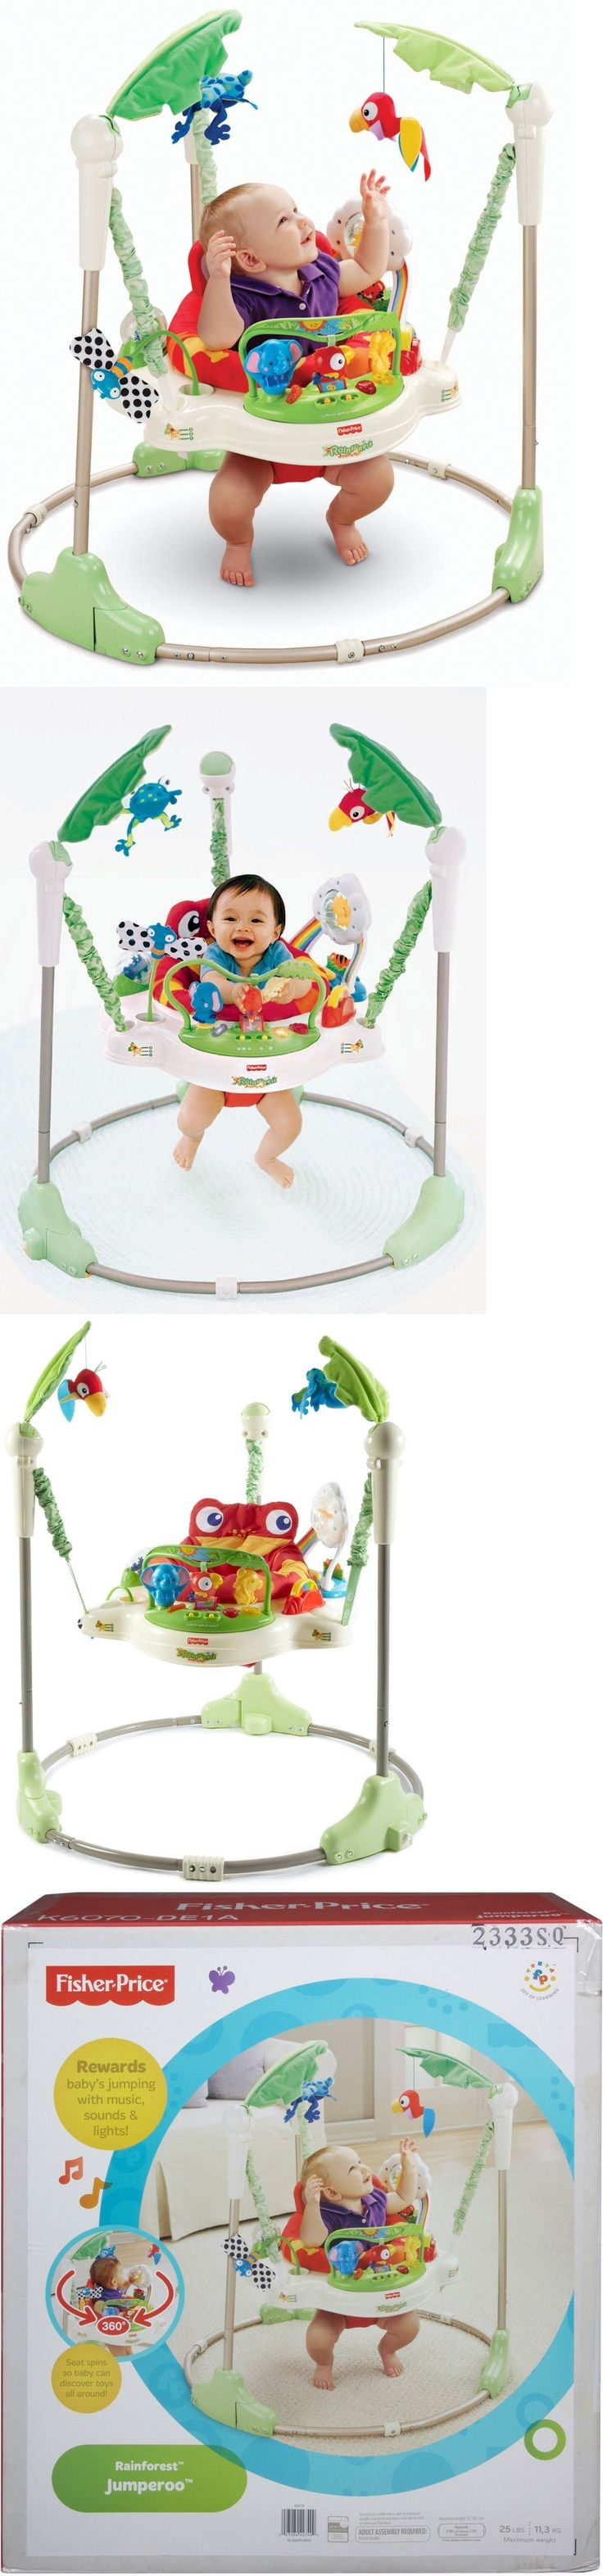 Baby Jumping Exercisers 117032: Fisher-Price Rainforest Jumperoo Baby Activity Center Seat Toy Jumper Bouncer -> BUY IT NOW ONLY: $129.94 on eBay!